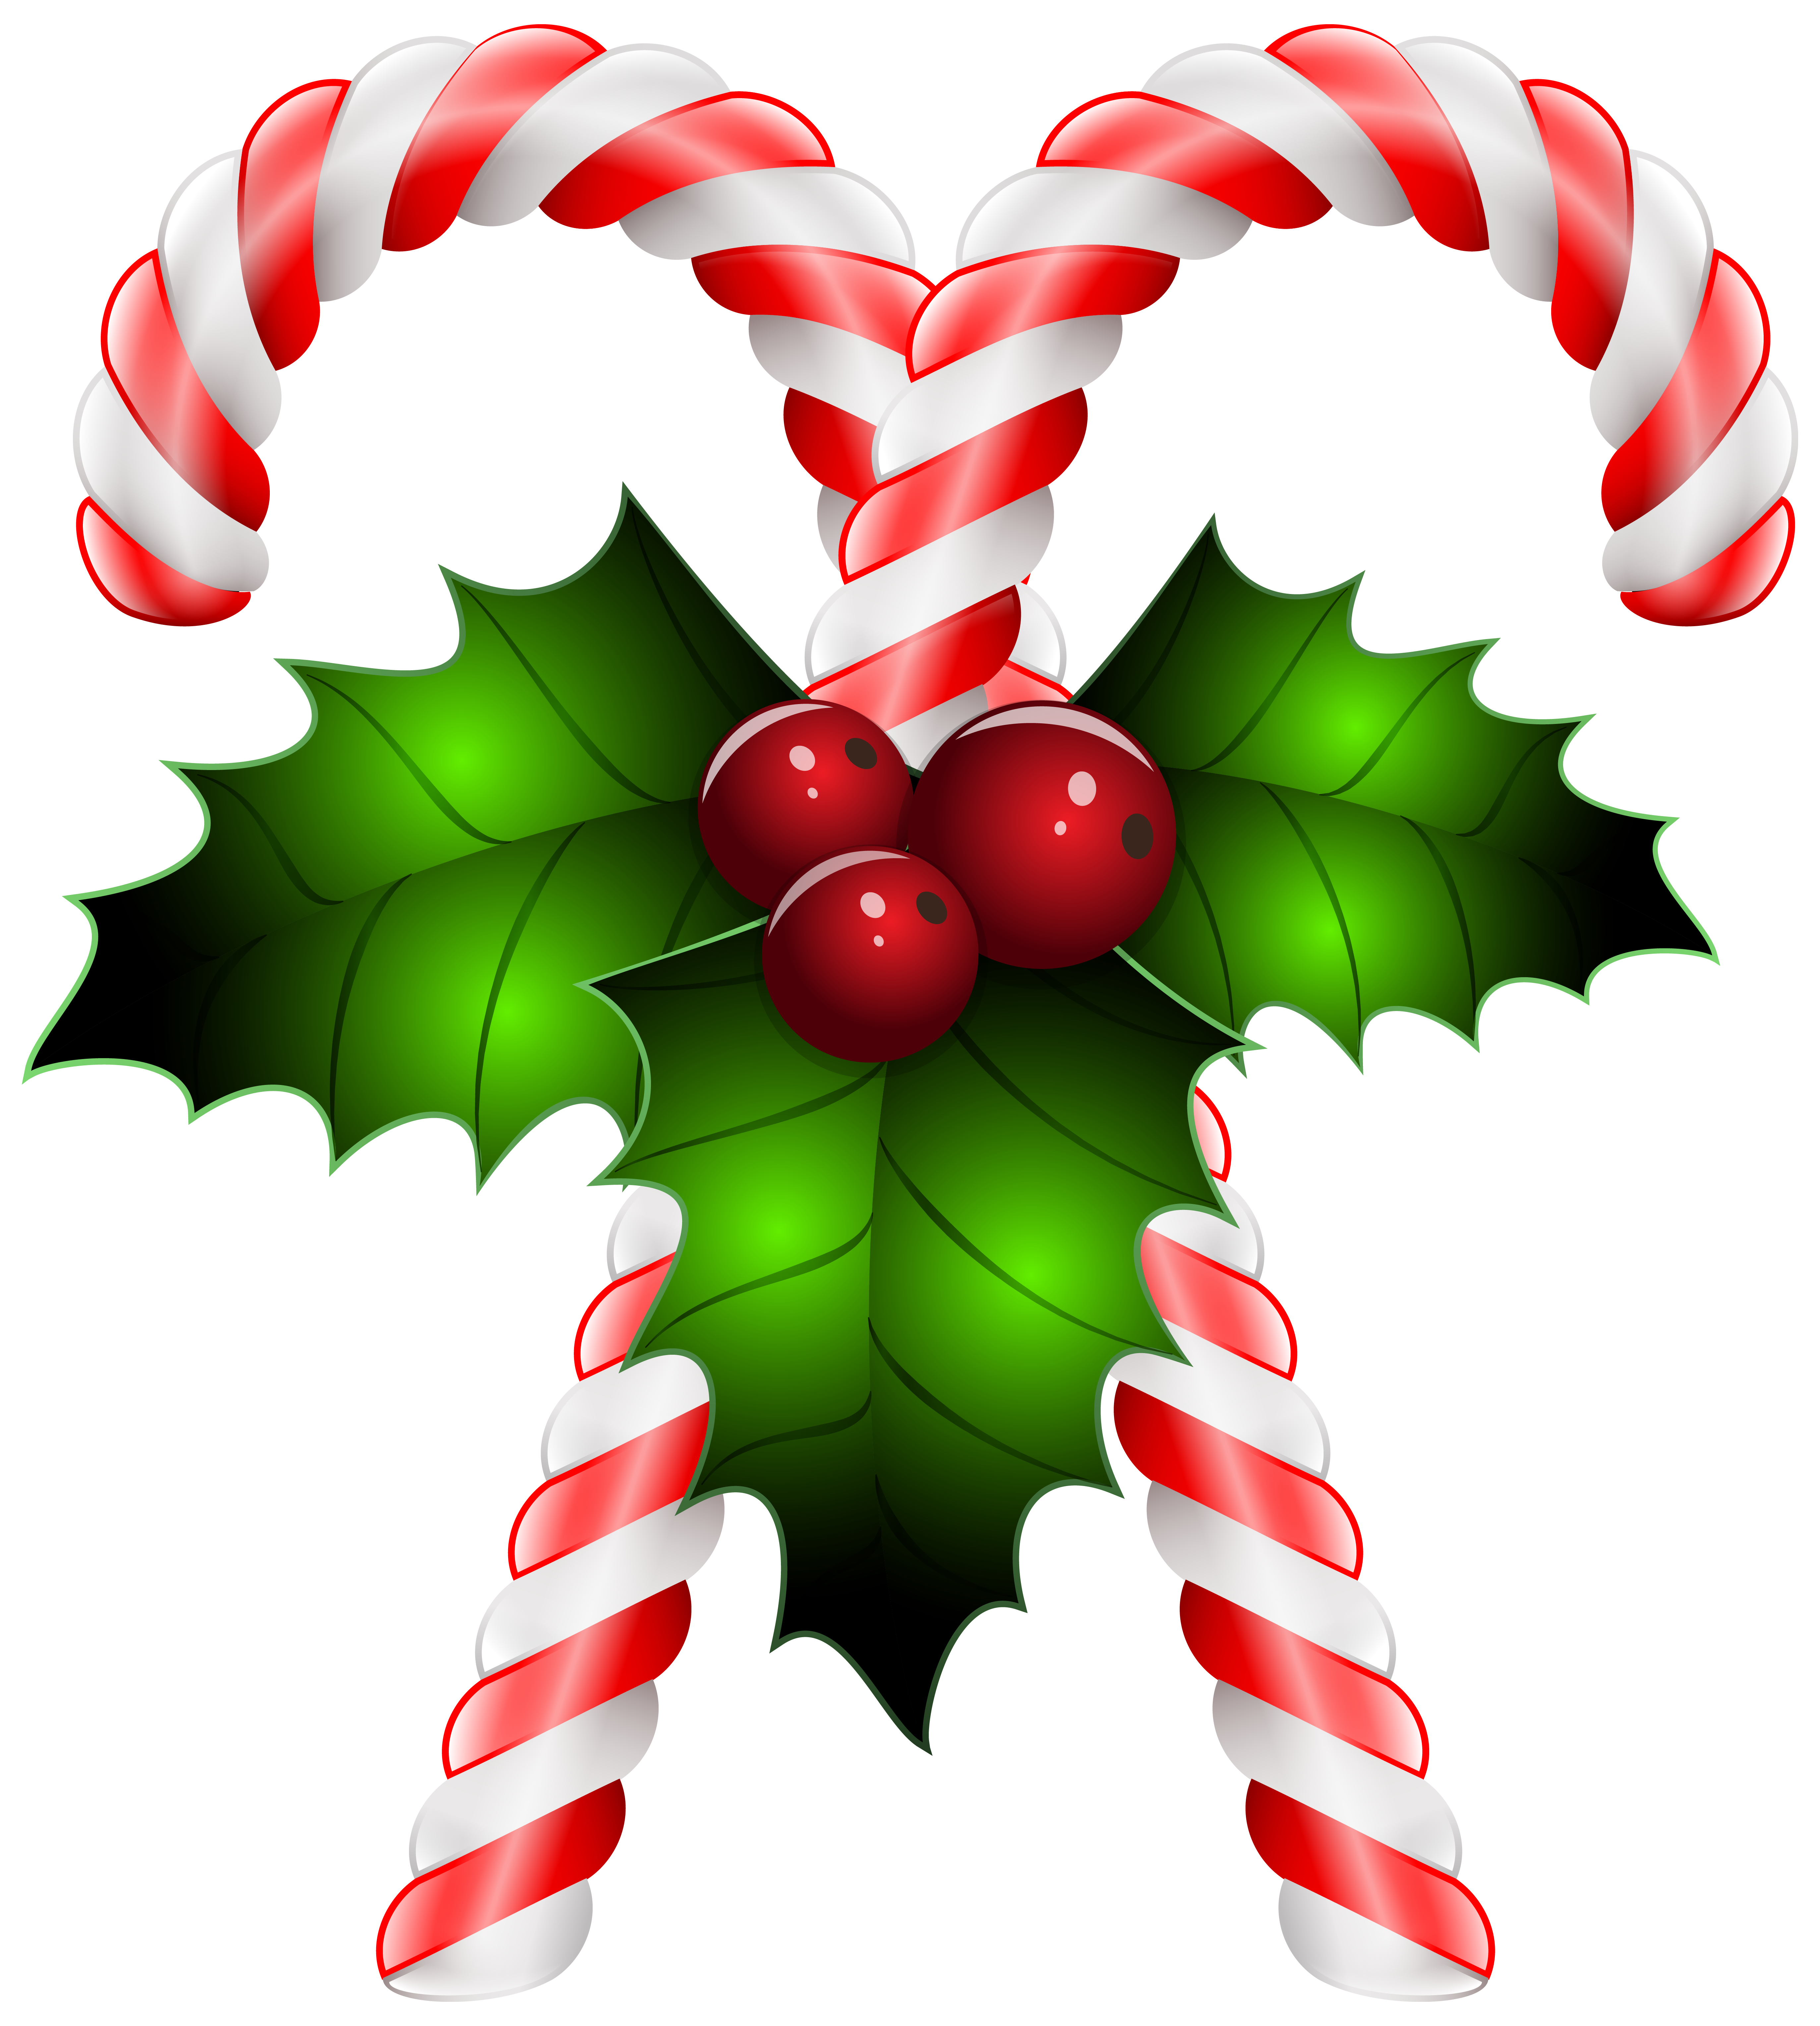 Christmas candy cane clipart image transparent stock Candy Canes with Holly Transparent PNG Clip Art Image | Gallery ... image transparent stock